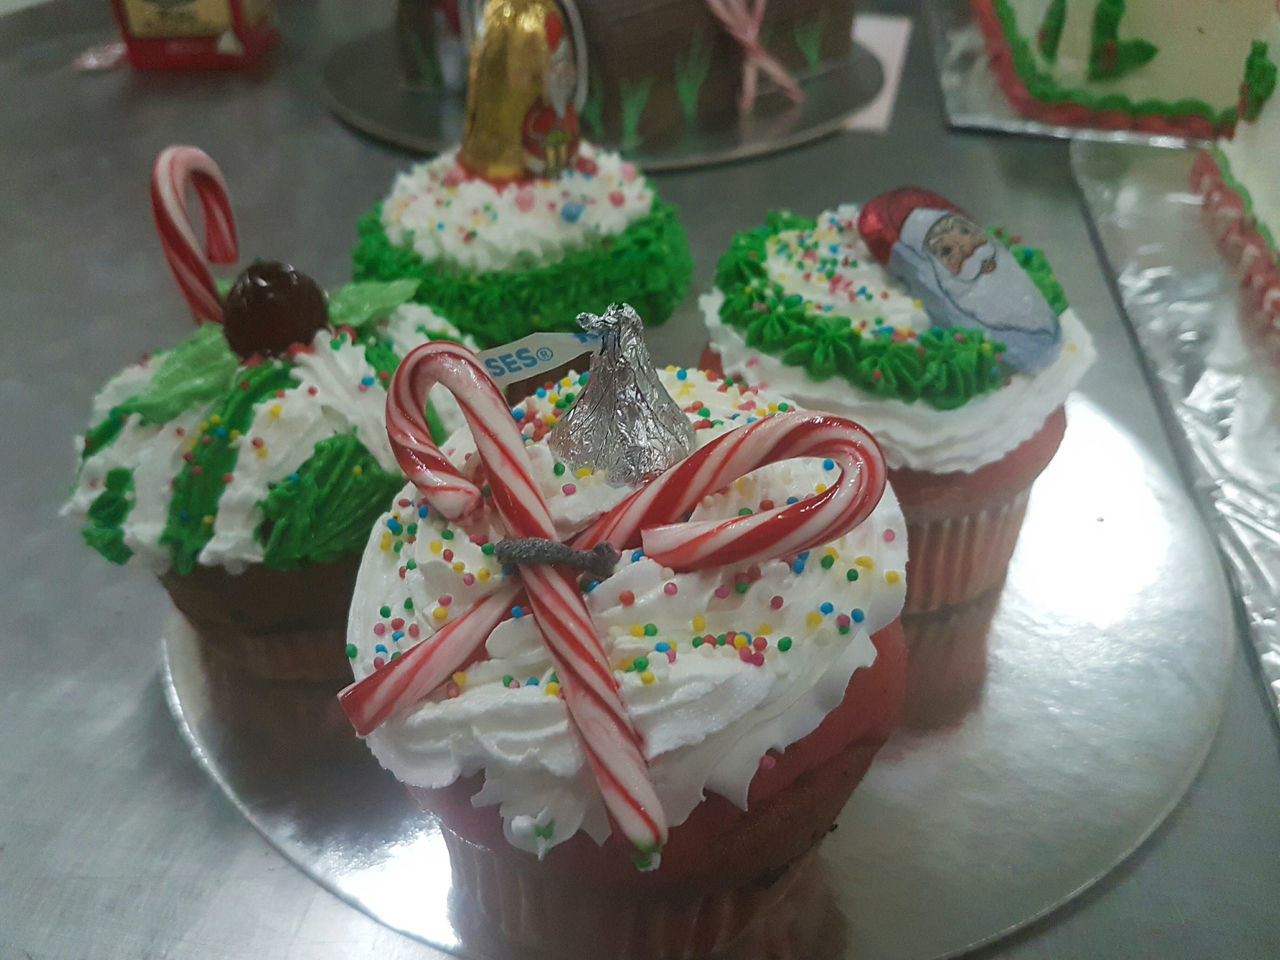 Handmade For You Dessert Christmas Sweet Food Food And Drink Temptation Pastry Cheflife Pastrychef Muffins